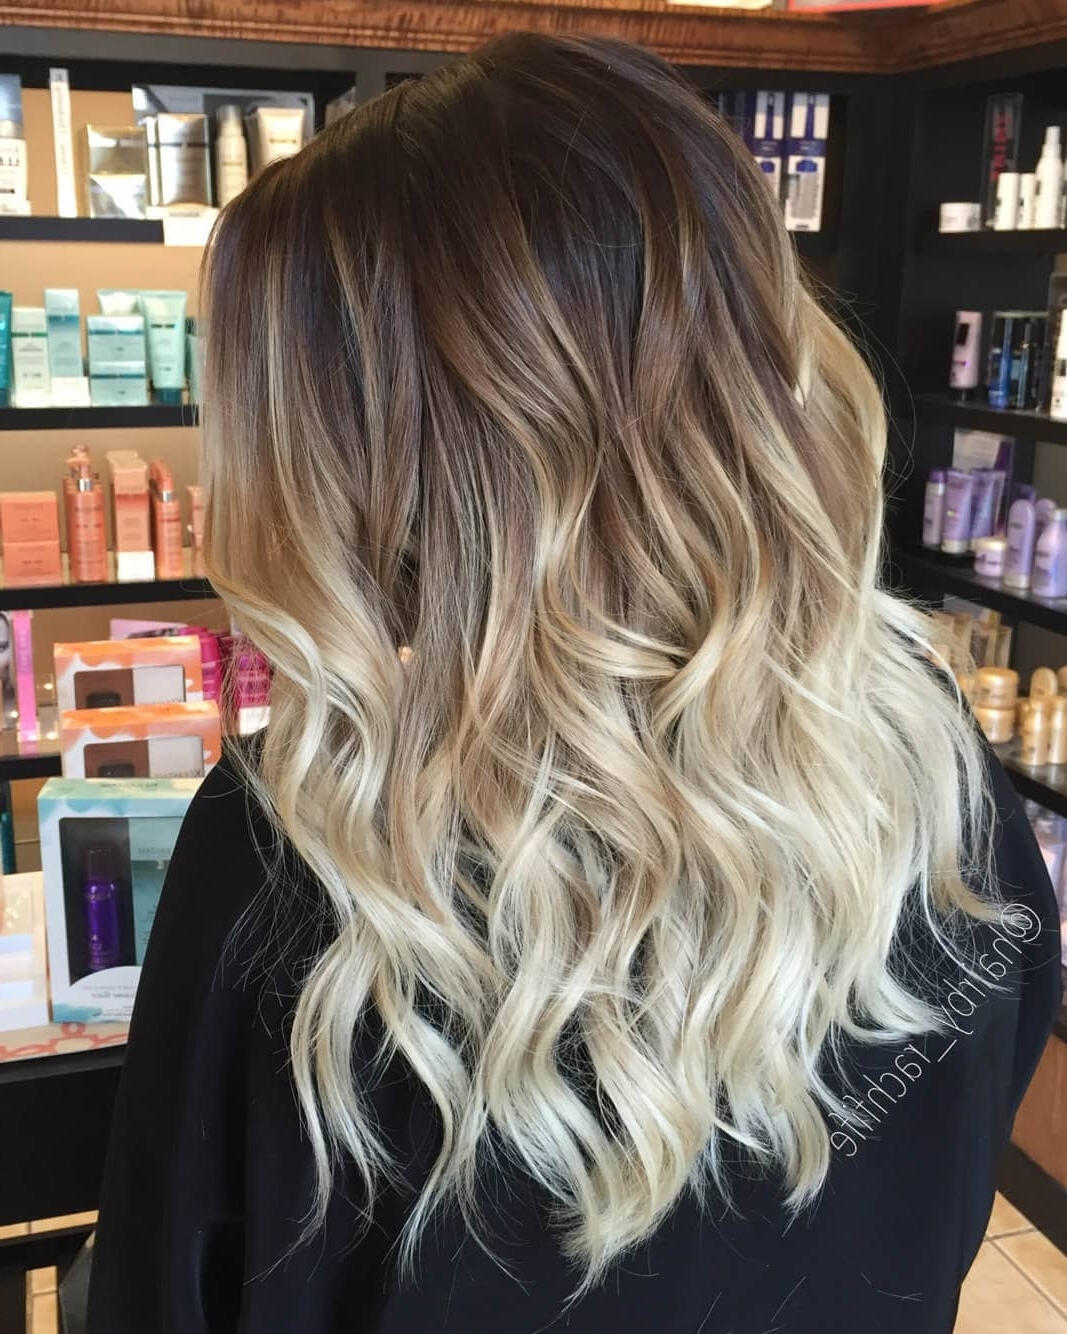 Preferred Dark Roots And Icy Cool Ends Blonde Hairstyles Inside 50 Proofs That Anyone Can Pull Off The Blond Ombre Hairstyle (View 10 of 20)